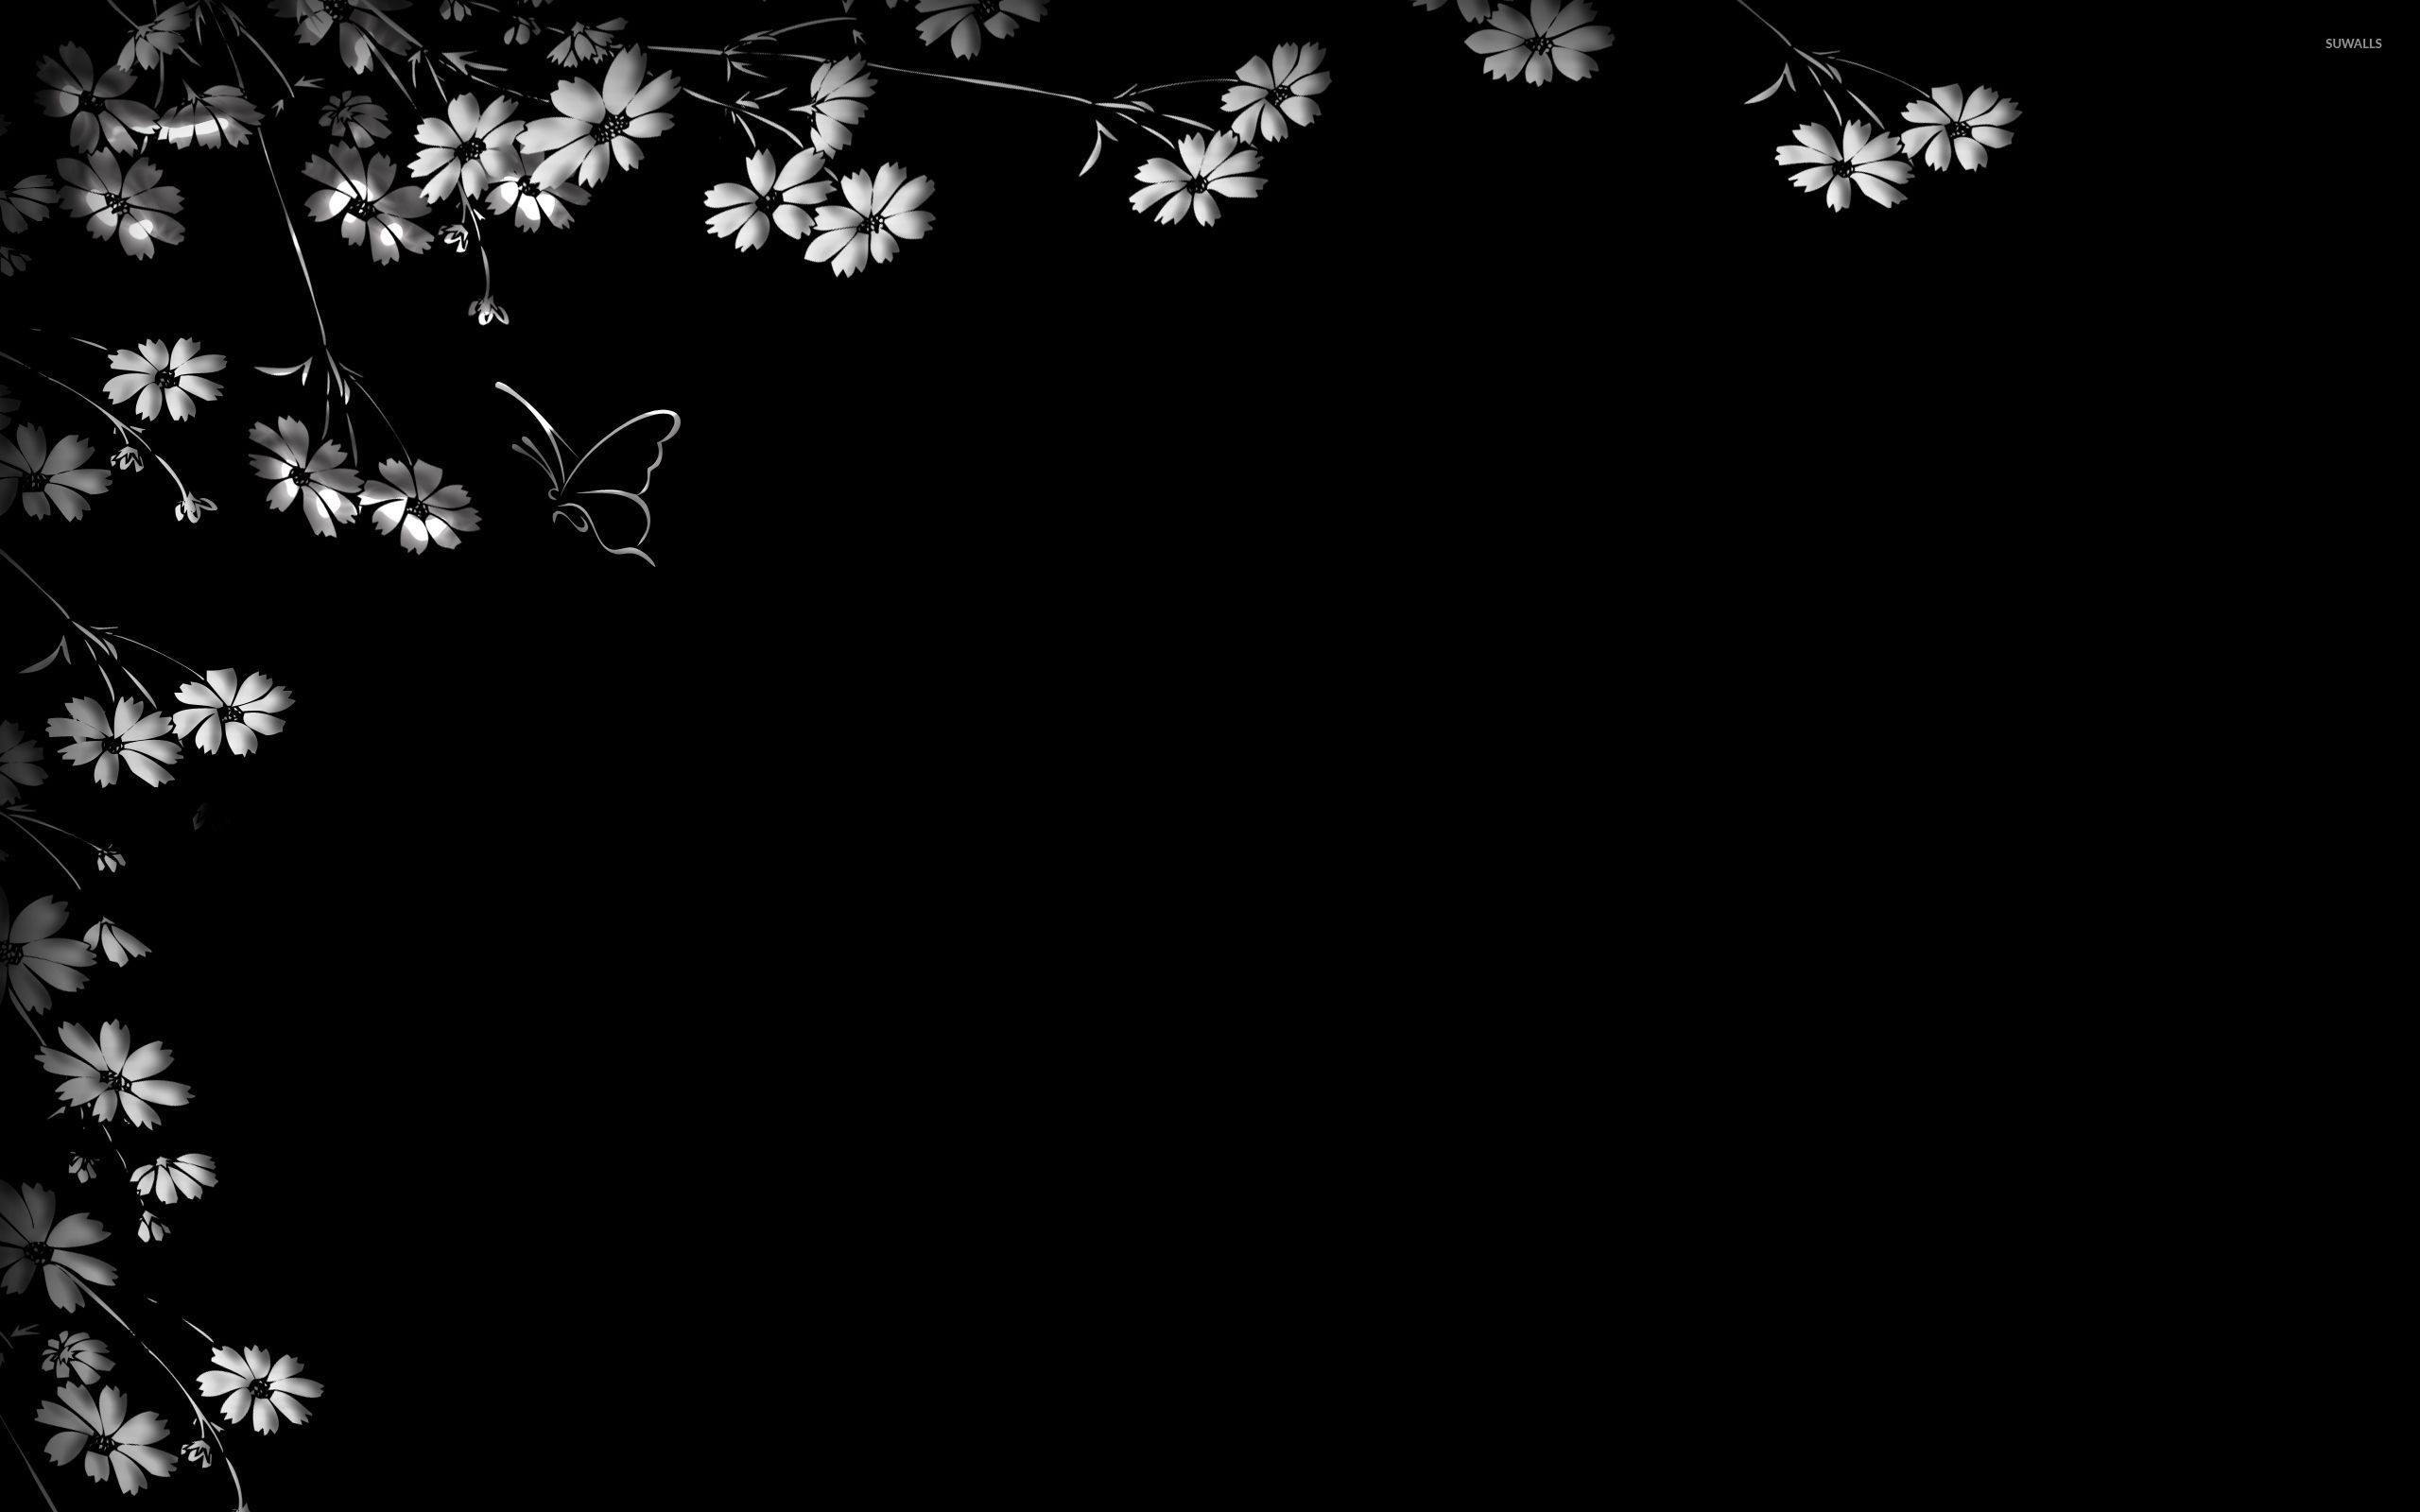 Flowers on the black wall wallpaper digital art for Black and white wallpaper for walls